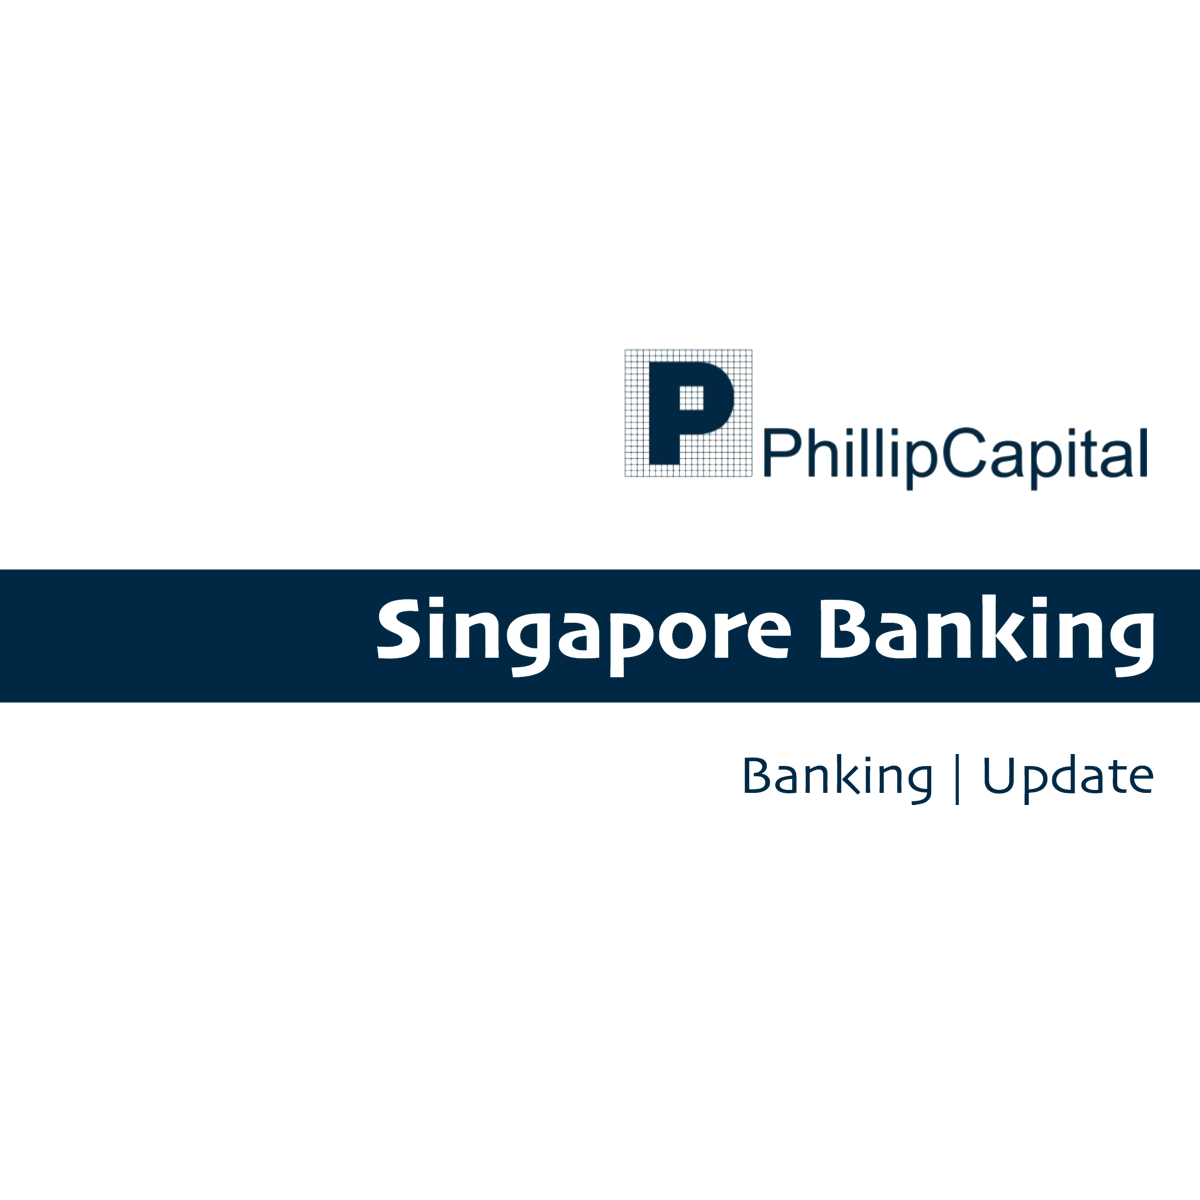 Singapore Banking Monthly - Phillip Securities 2018-02-12: SIBOR Surrendered December Gains In January